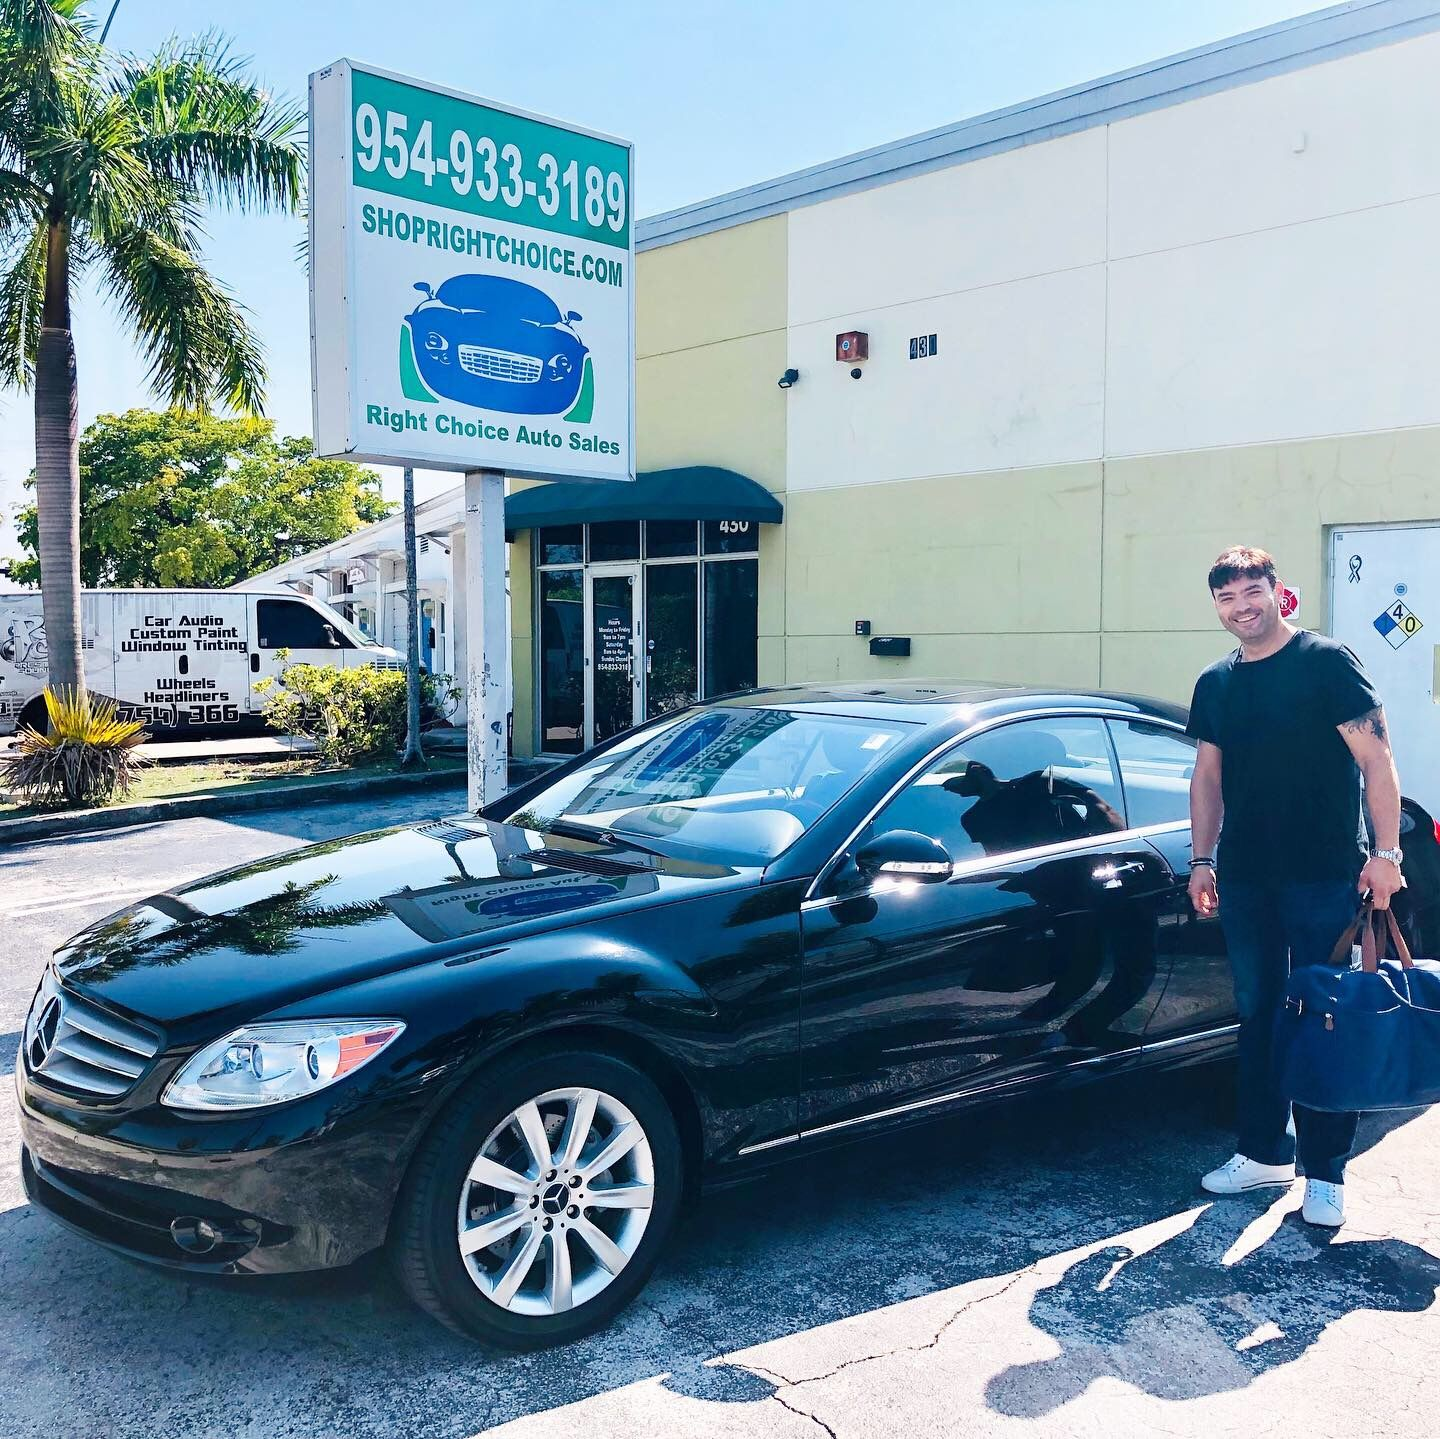 Sonny Flew In From New York And Saved 4 360 On This Spectacular 2008 Mercedes Benz Cl550 At Right Choice Auto Sales In P Cars For Sale Used Cars Pompano Beach